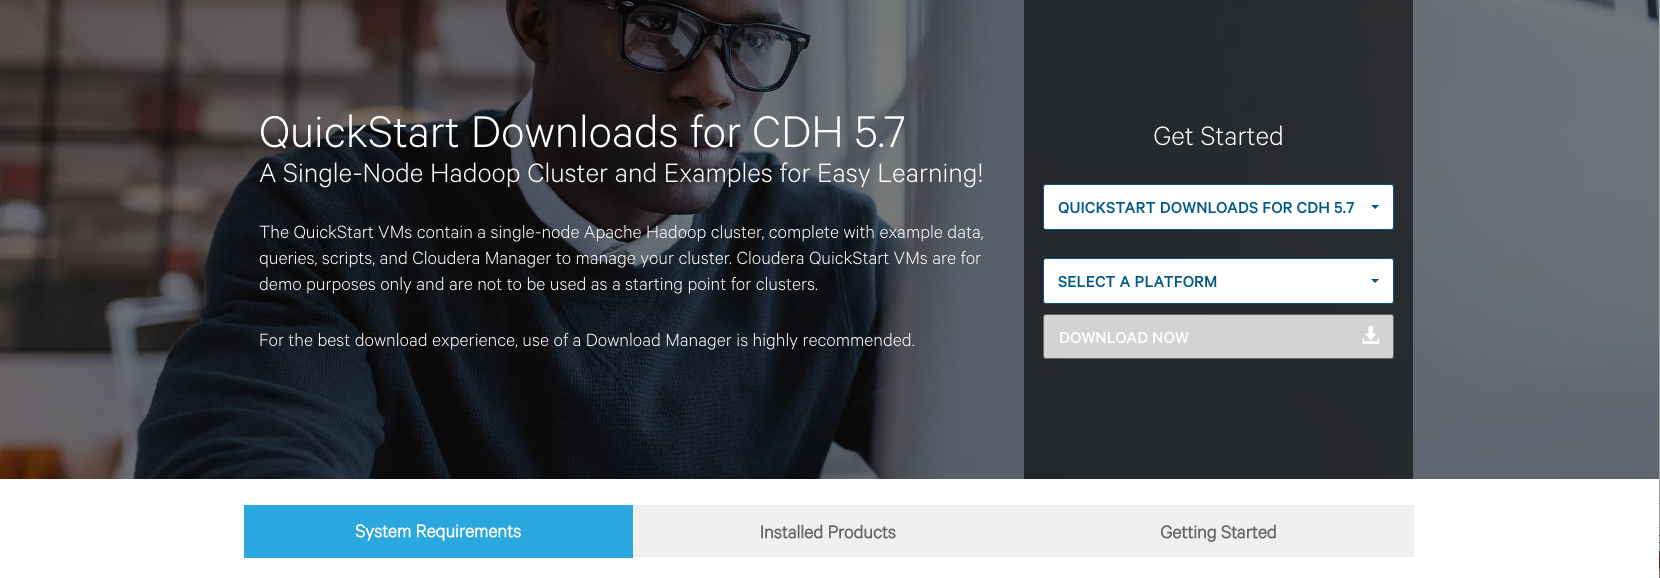 Cloudera Downloads Html